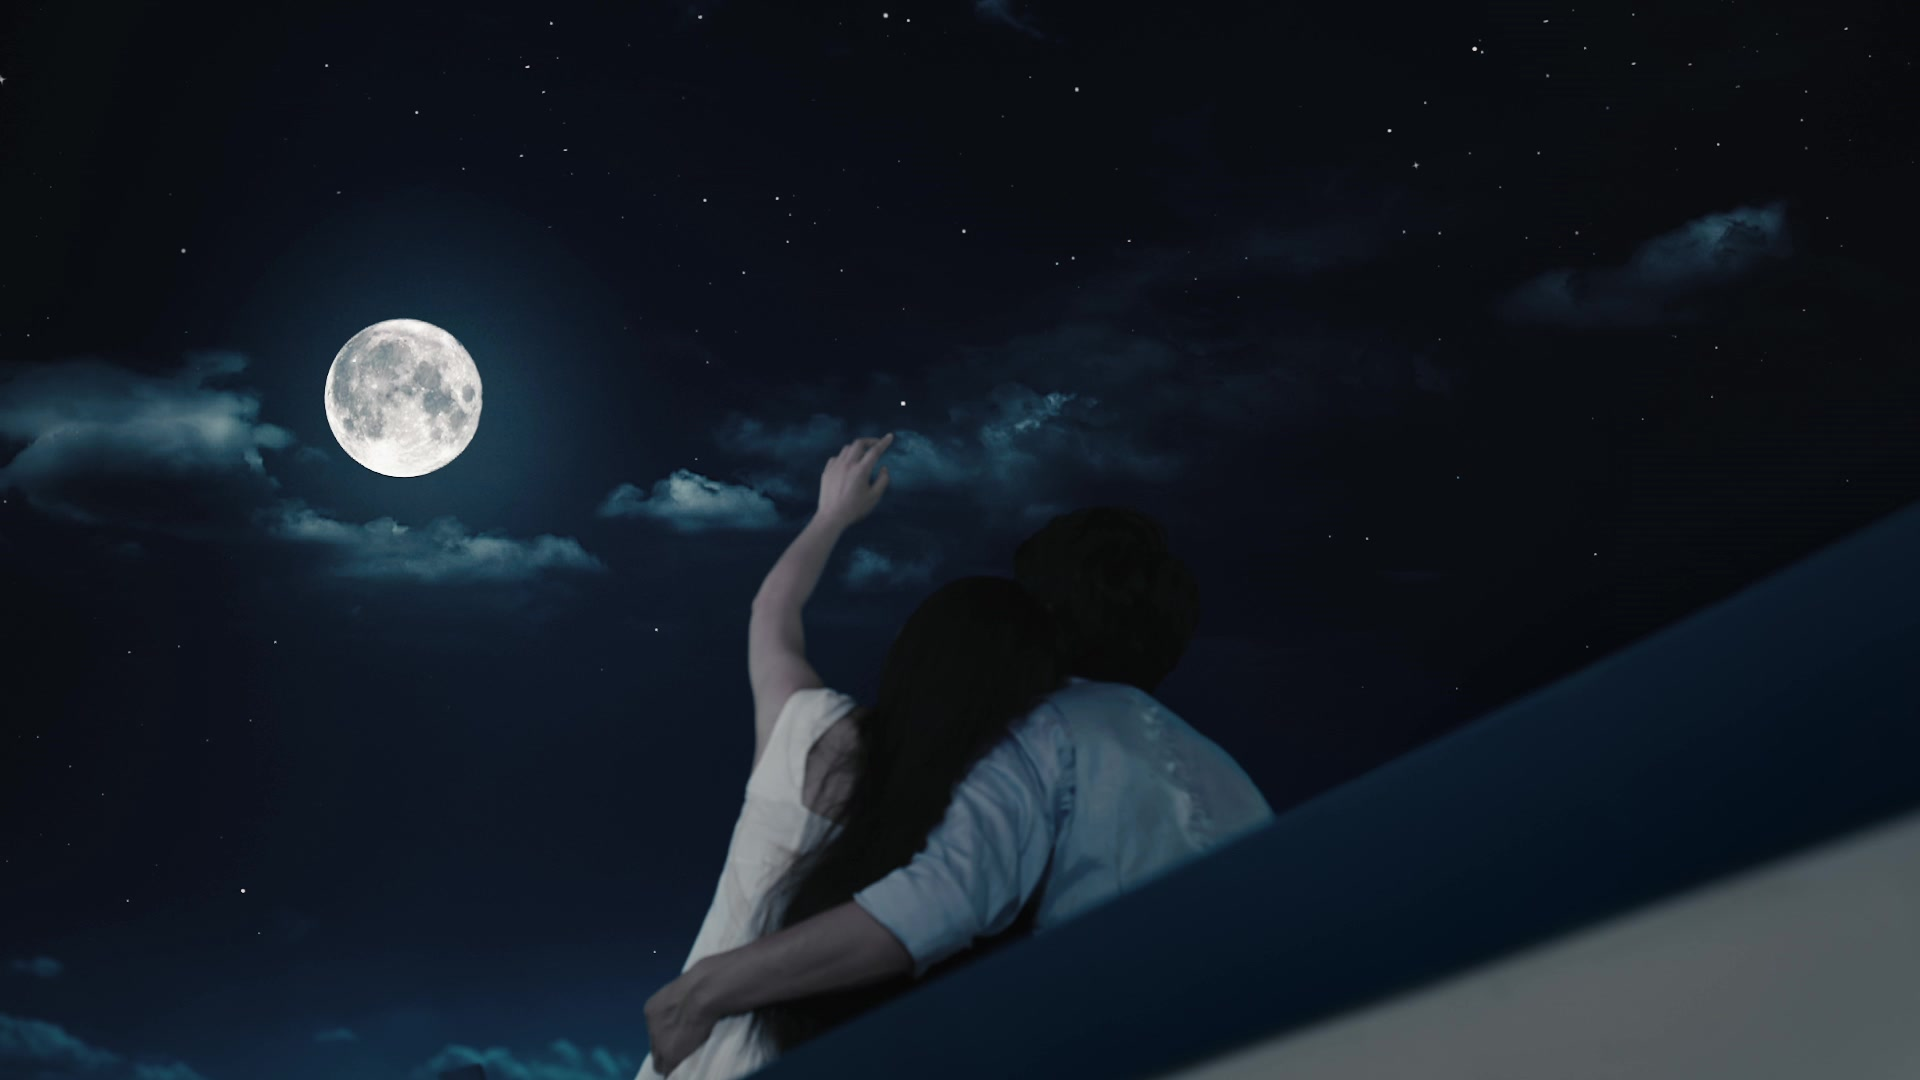 Night light kissasian - Official Trailer The Starry Night The Starry Sea